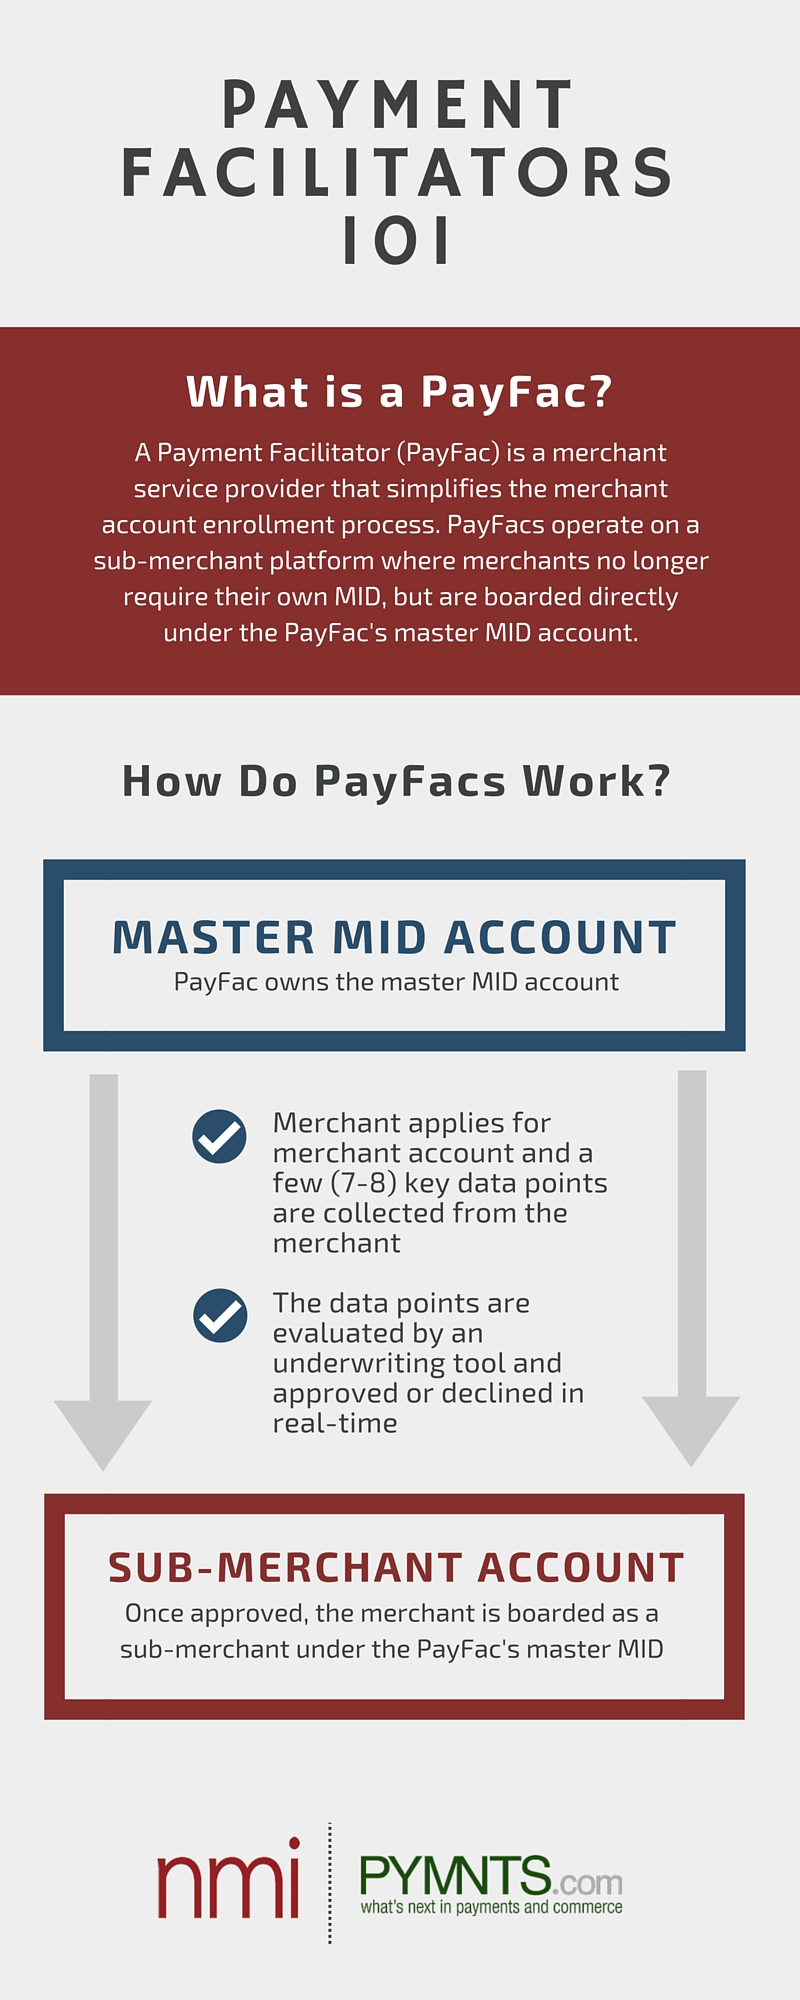 What Is A Payment Facilitator? | PYMNTS com